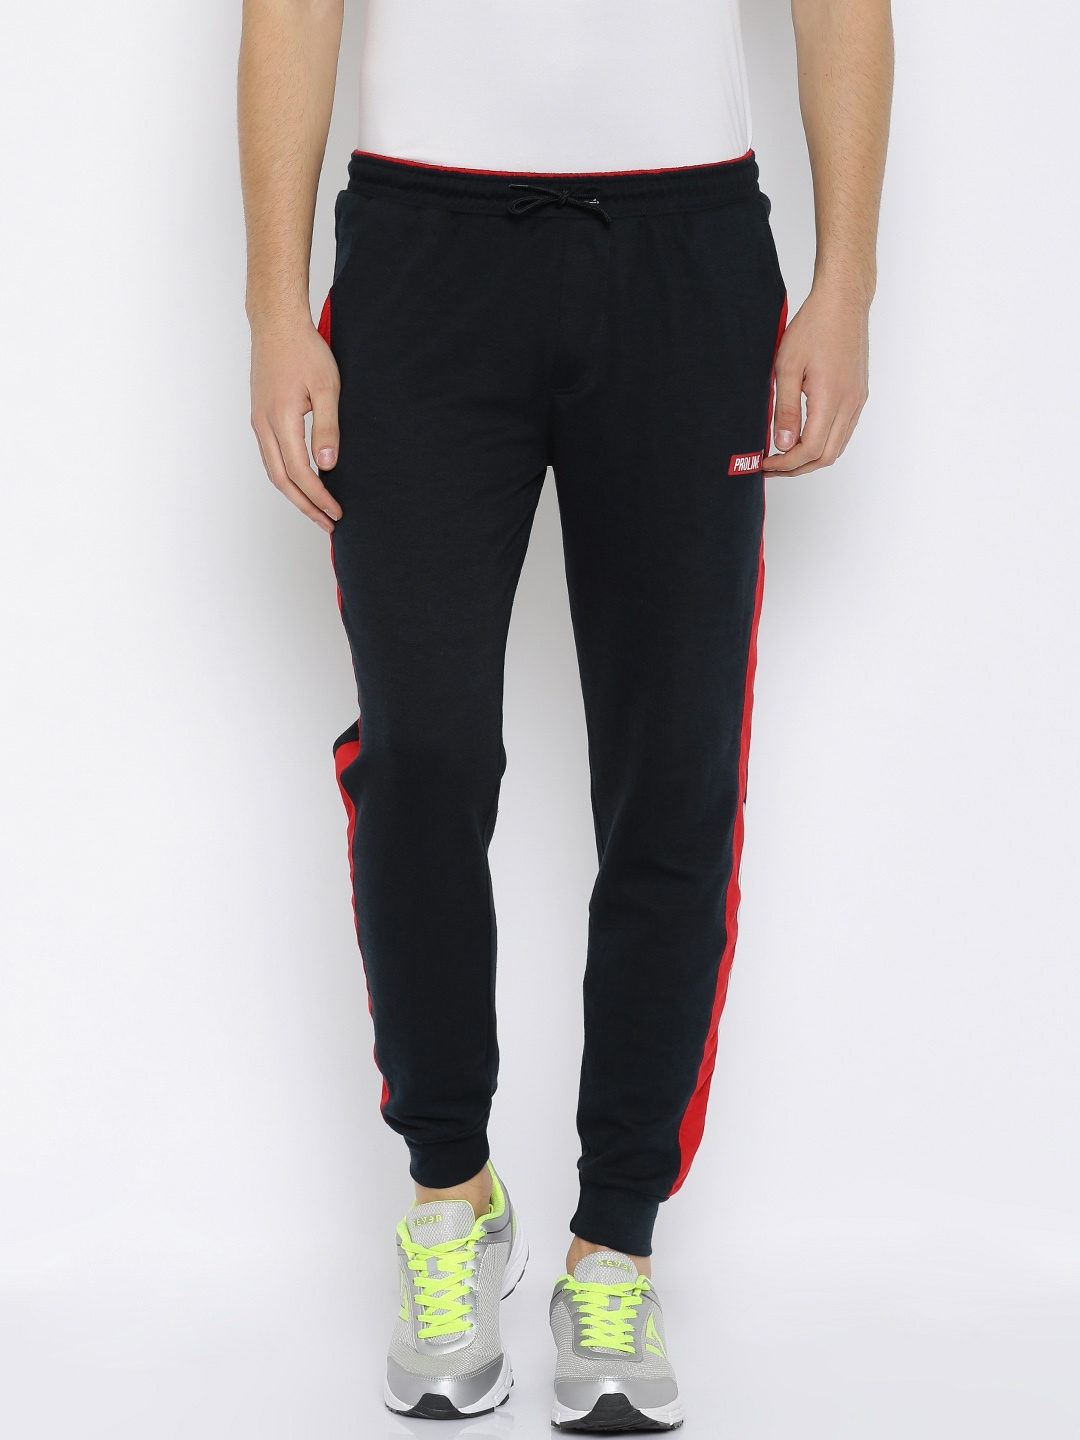 Men's Joggers. Shop joggers for men at Zumiez, carrying jogger pants from brands like Crysp, Fairplay, American Stitch and more. Free shipping on all joggers.